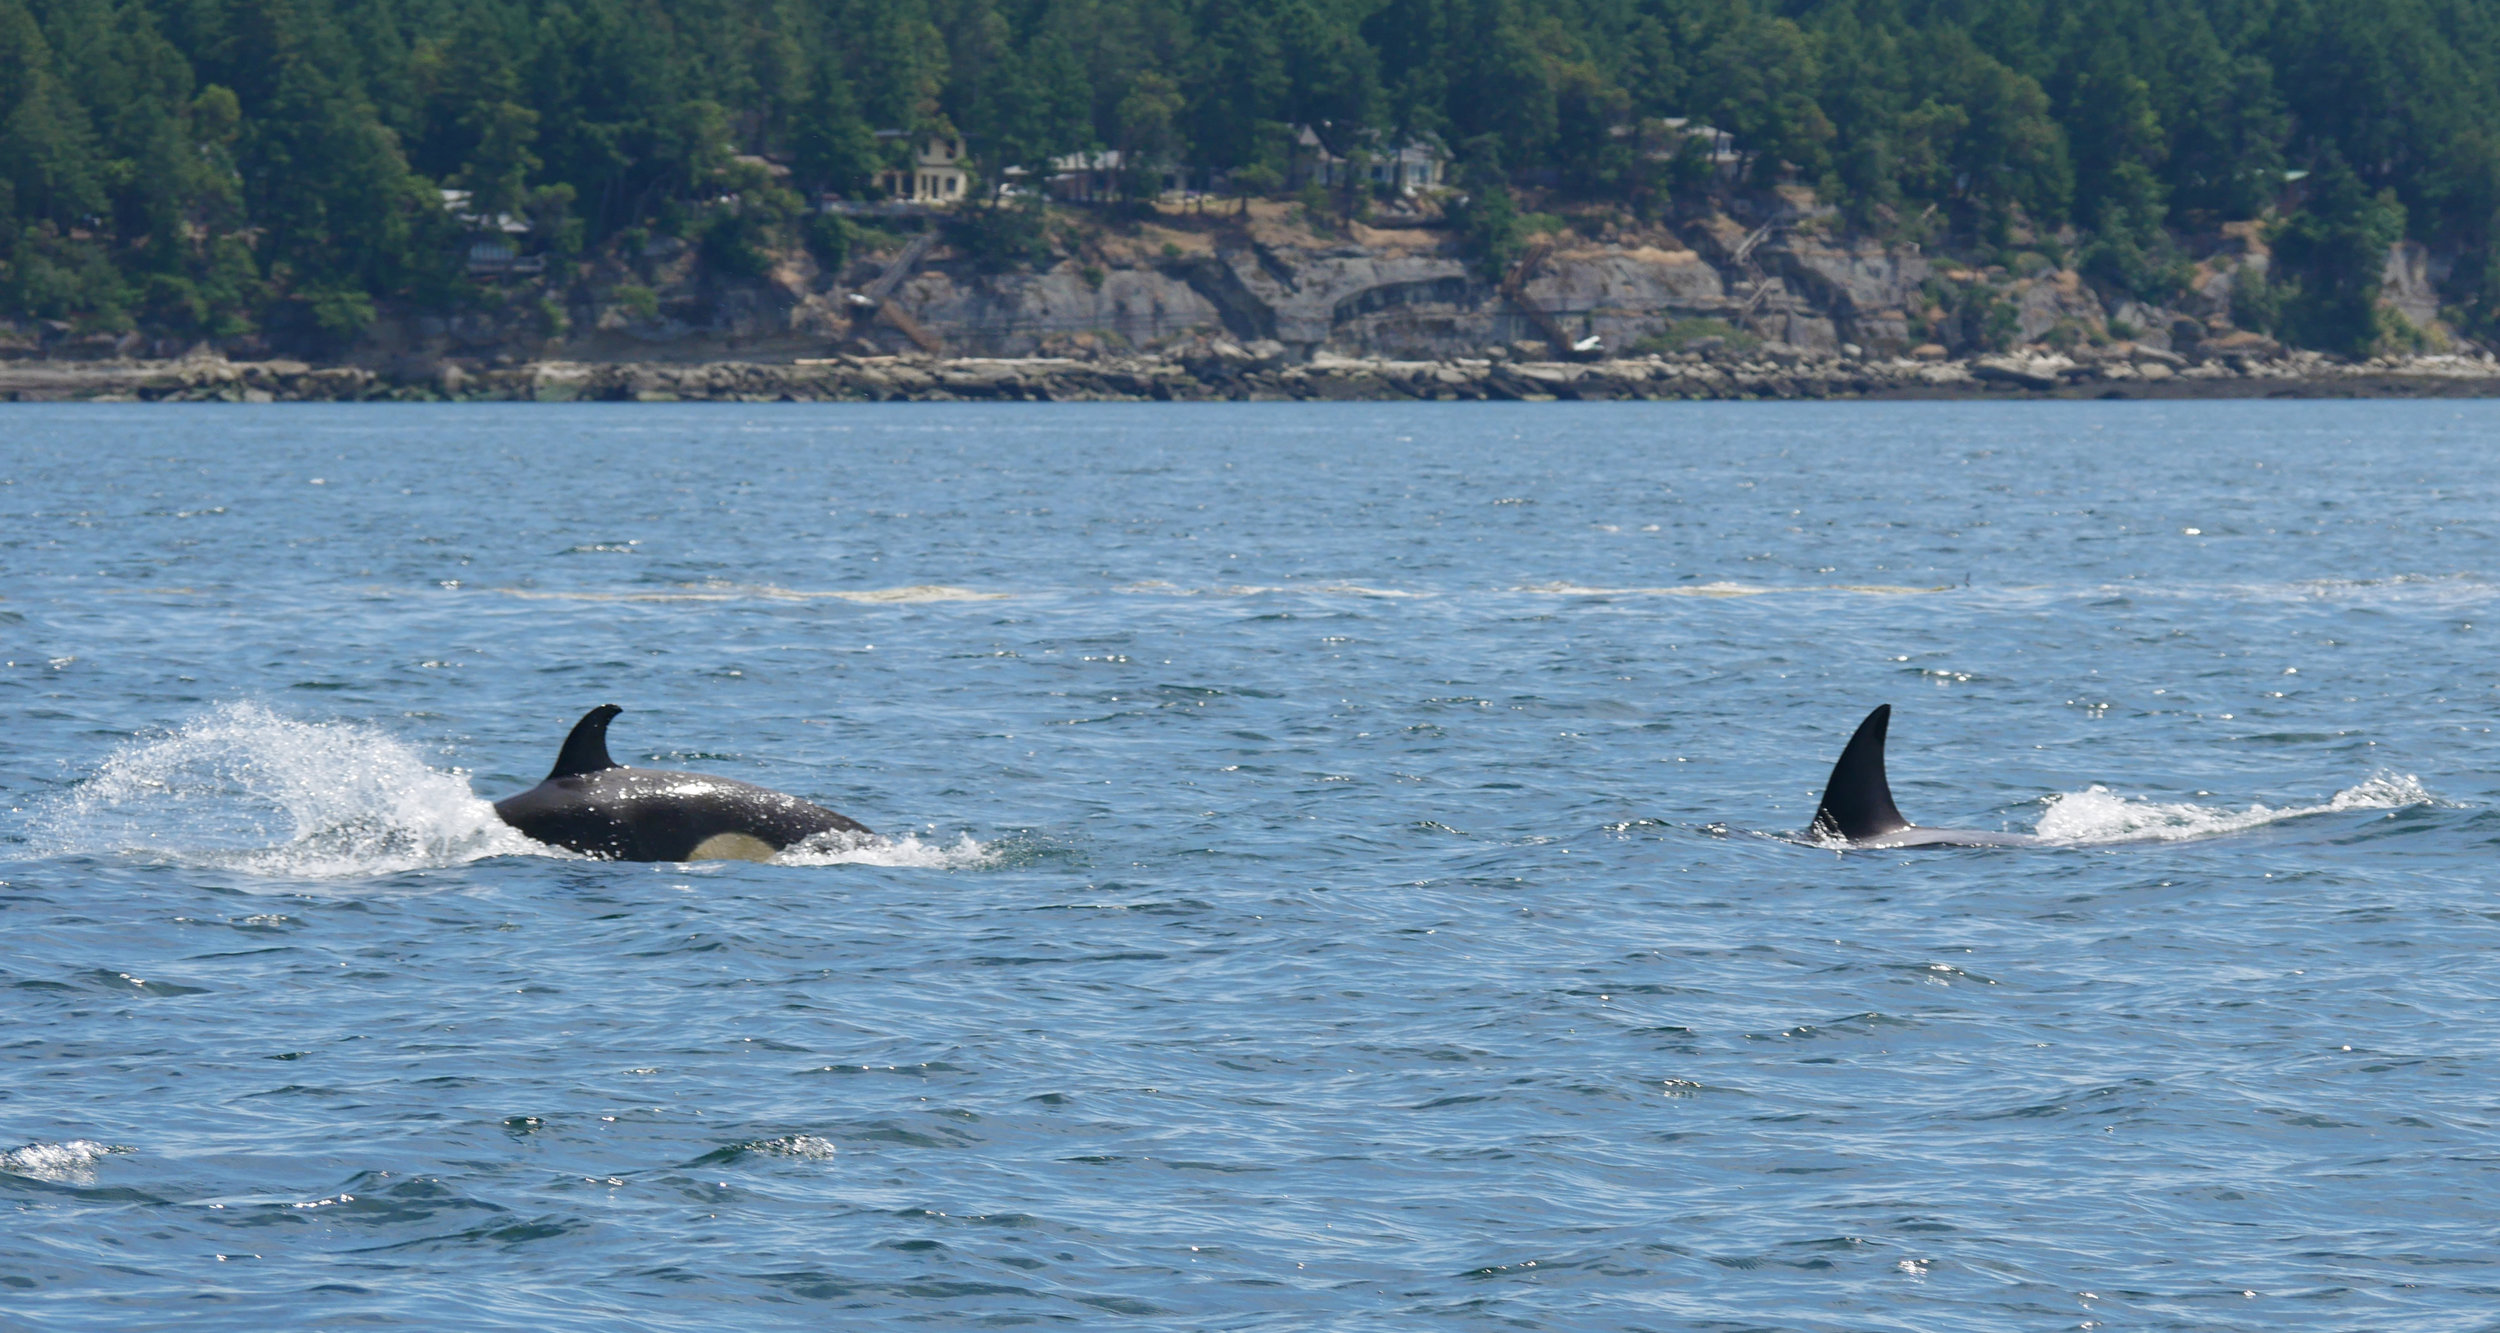 Calf with the hooked dorsal (left) surfacing with another member of the pod (right). Photo by Val Watson.